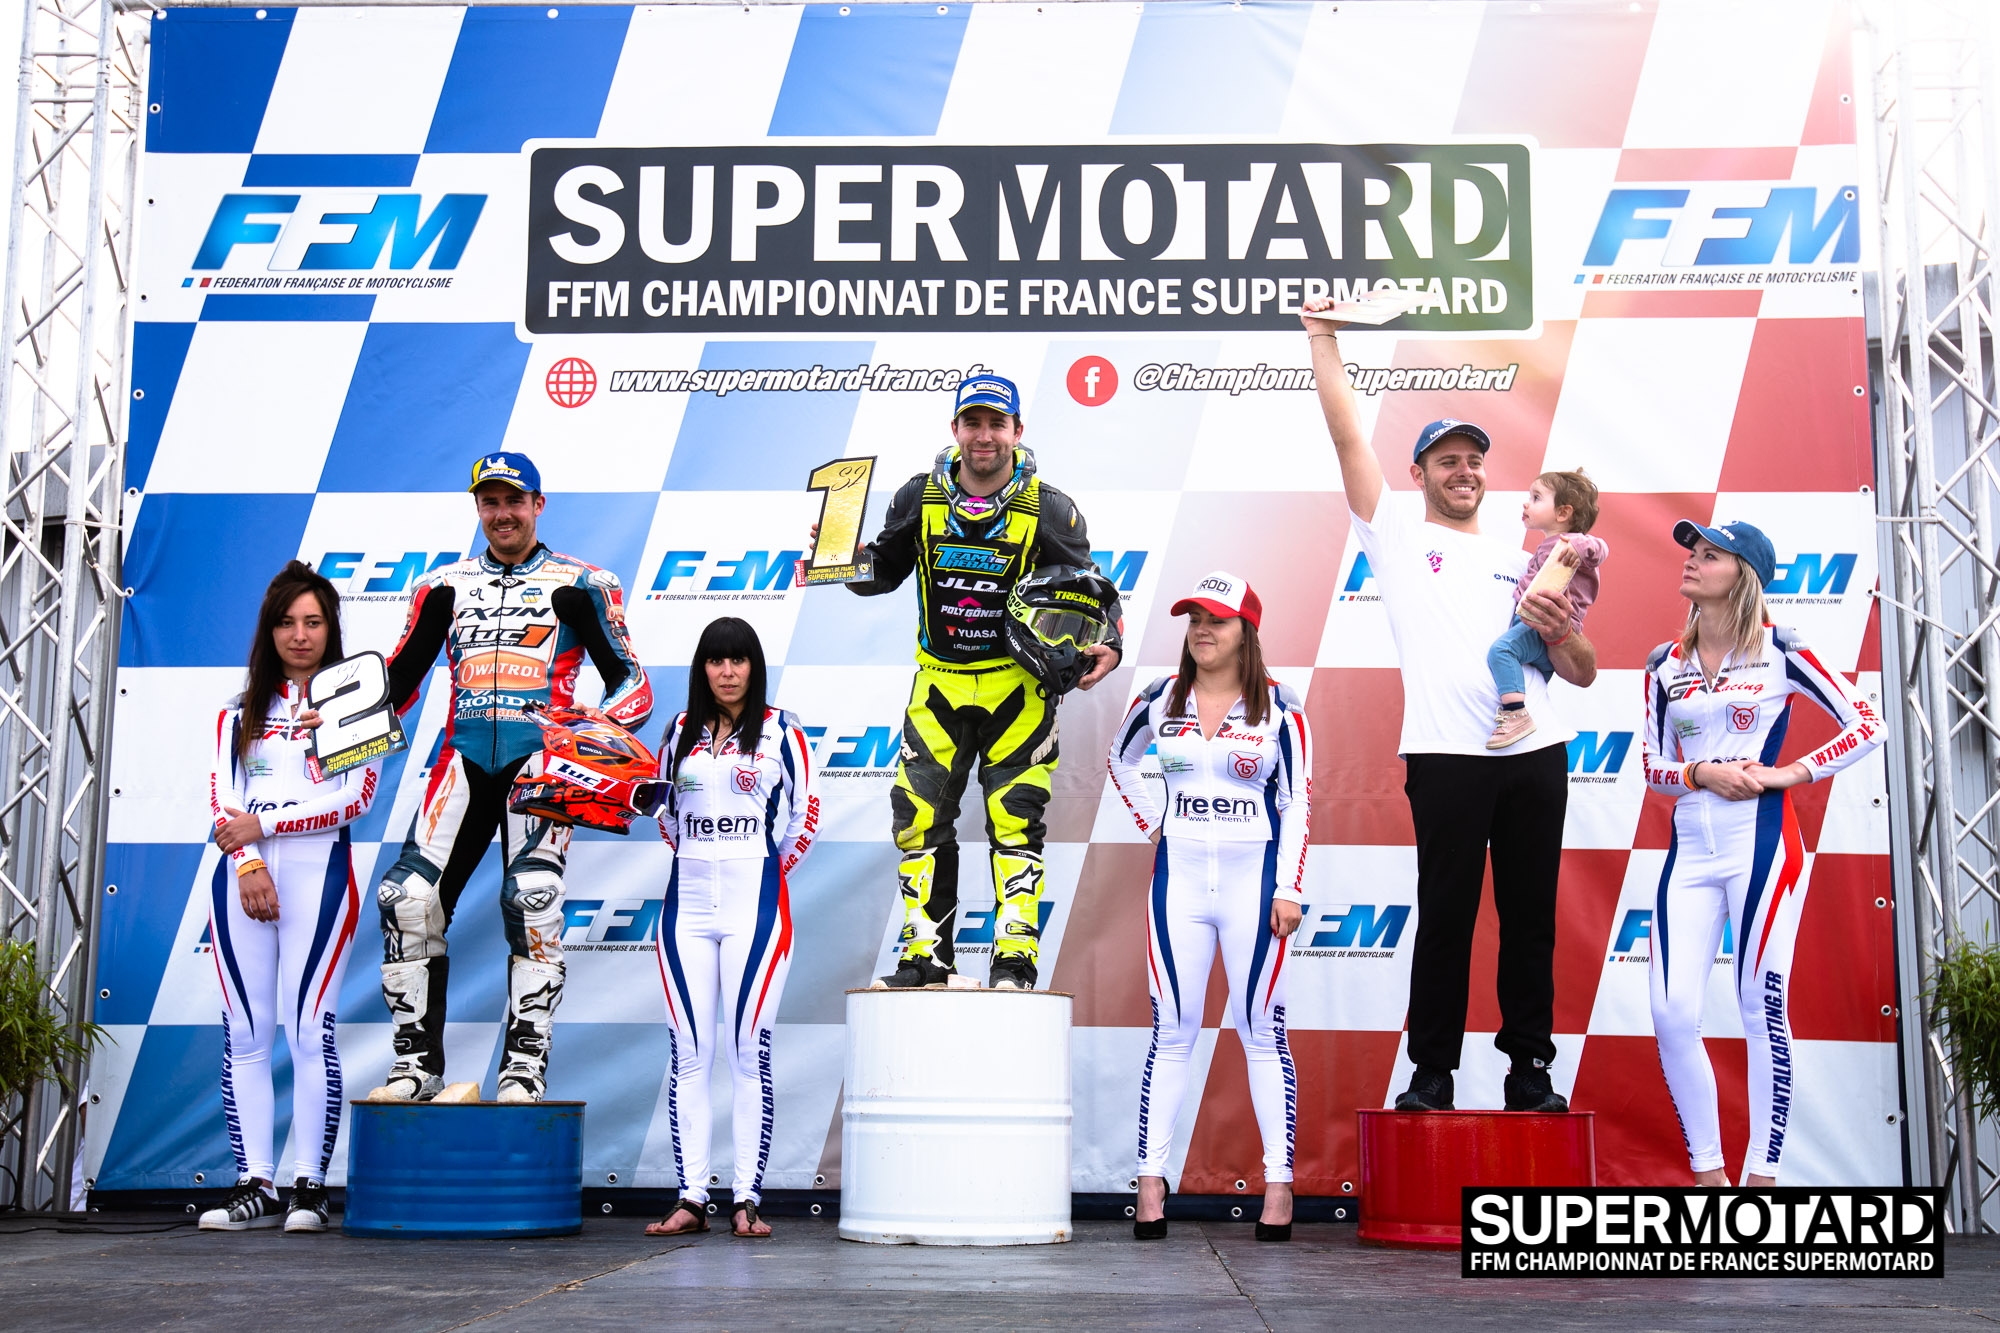 Podium Supermotard